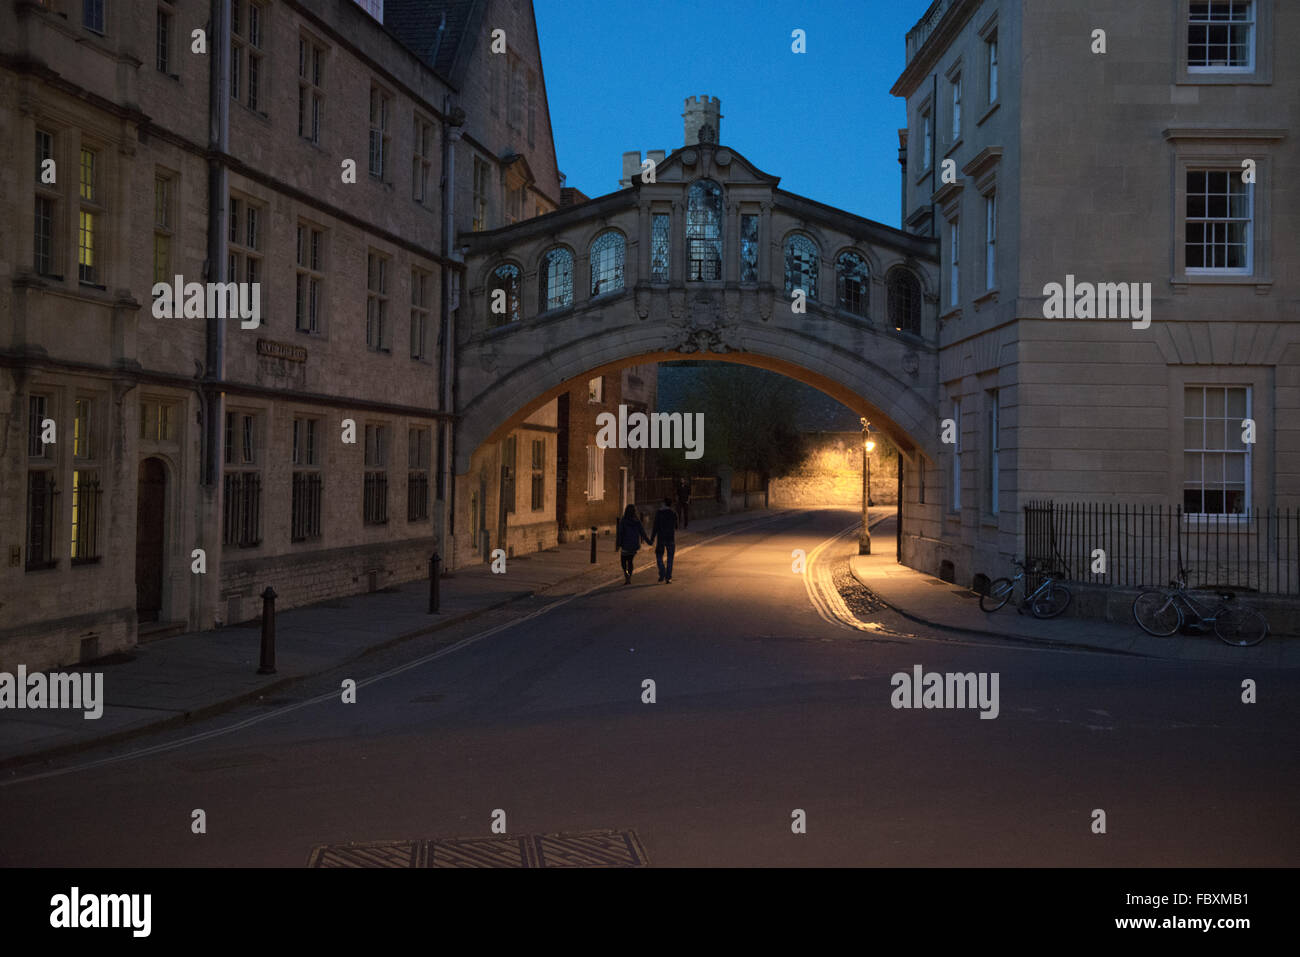 Bridge of Seighs in Oxford - Stock Image